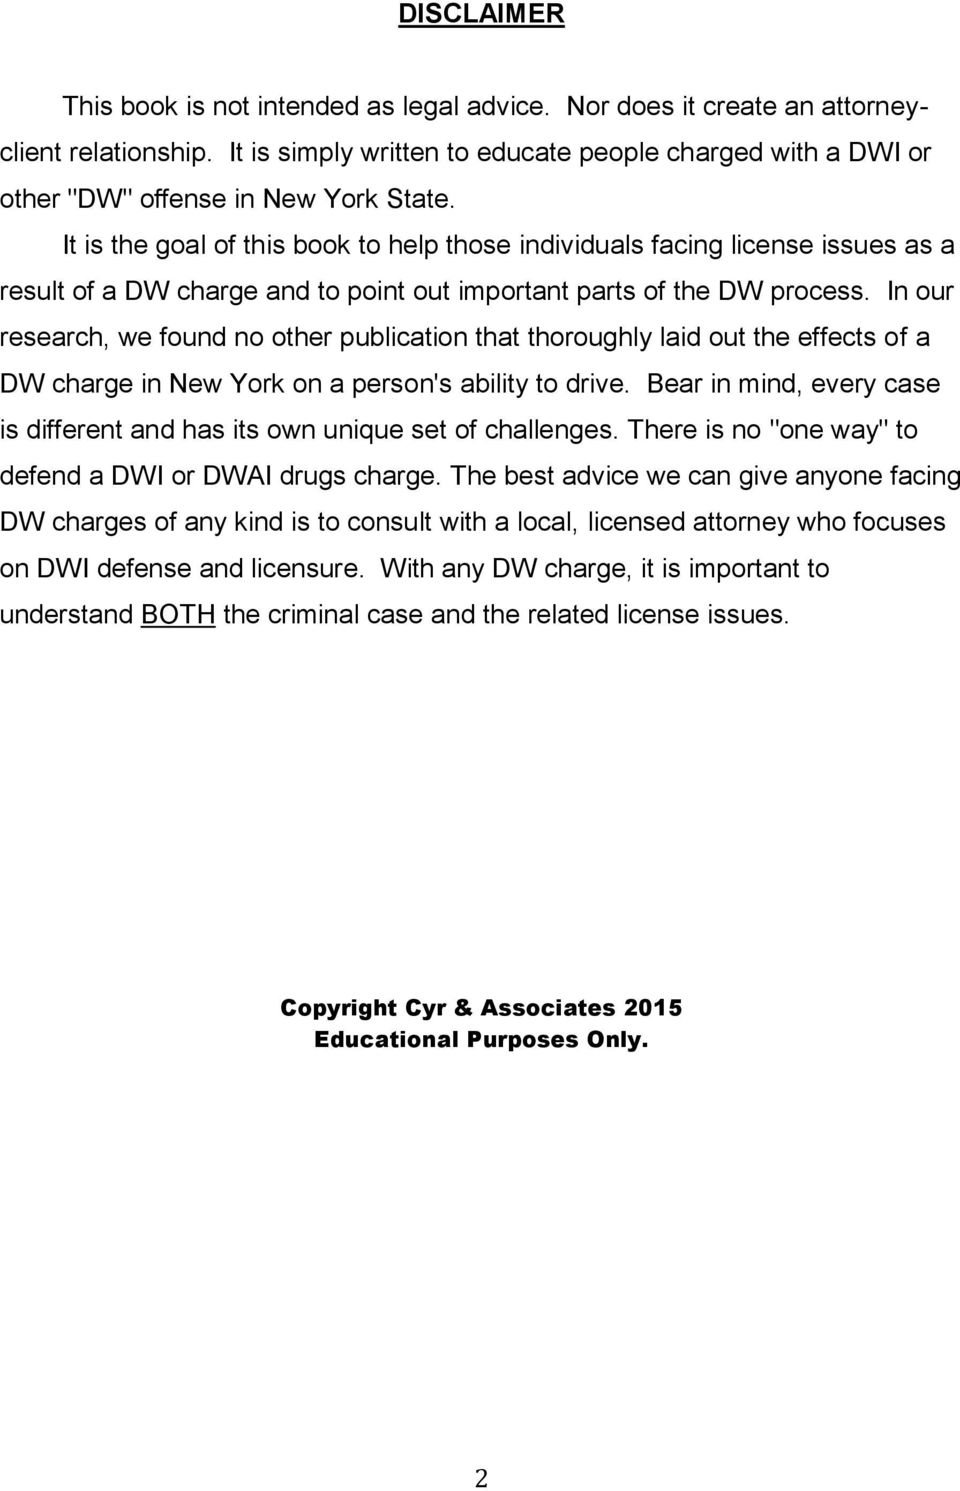 It is the goal of this book to help those individuals facing license issues as a result of a DW charge and to point out important parts of the DW process.